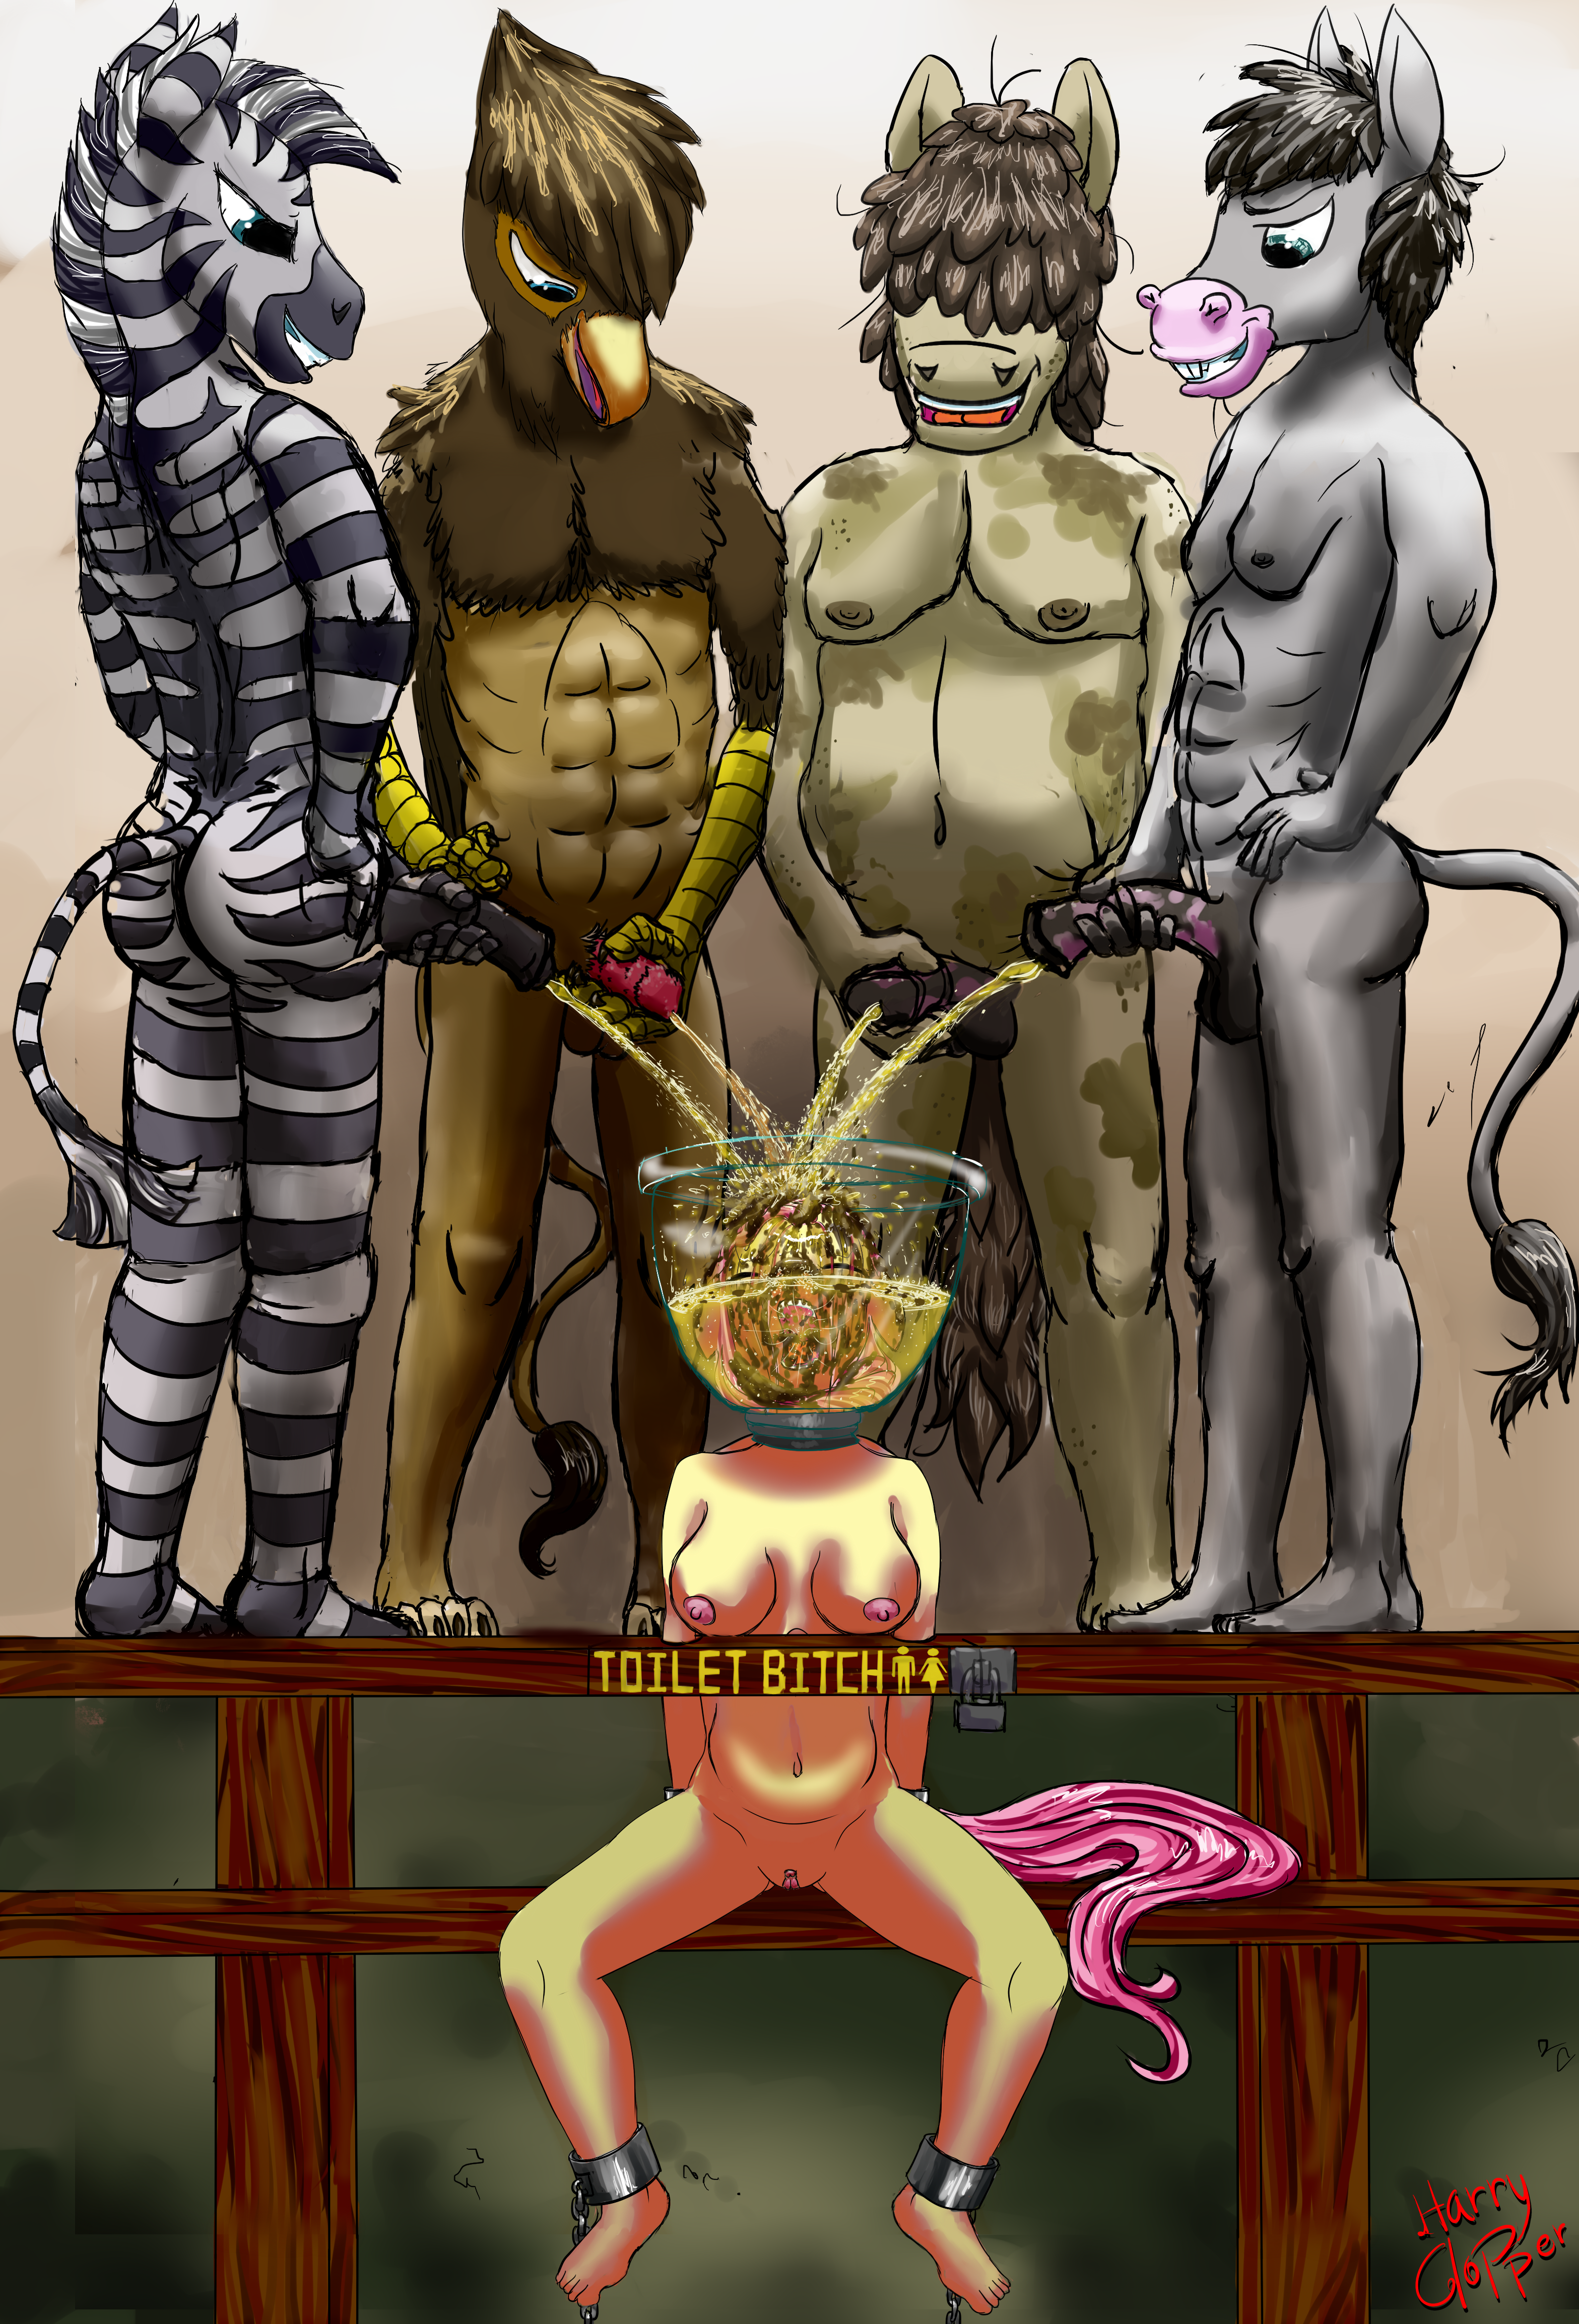 2122129_HarryClopper_completed_fluttershy_toilet_head_full_piss_scat_big_belly